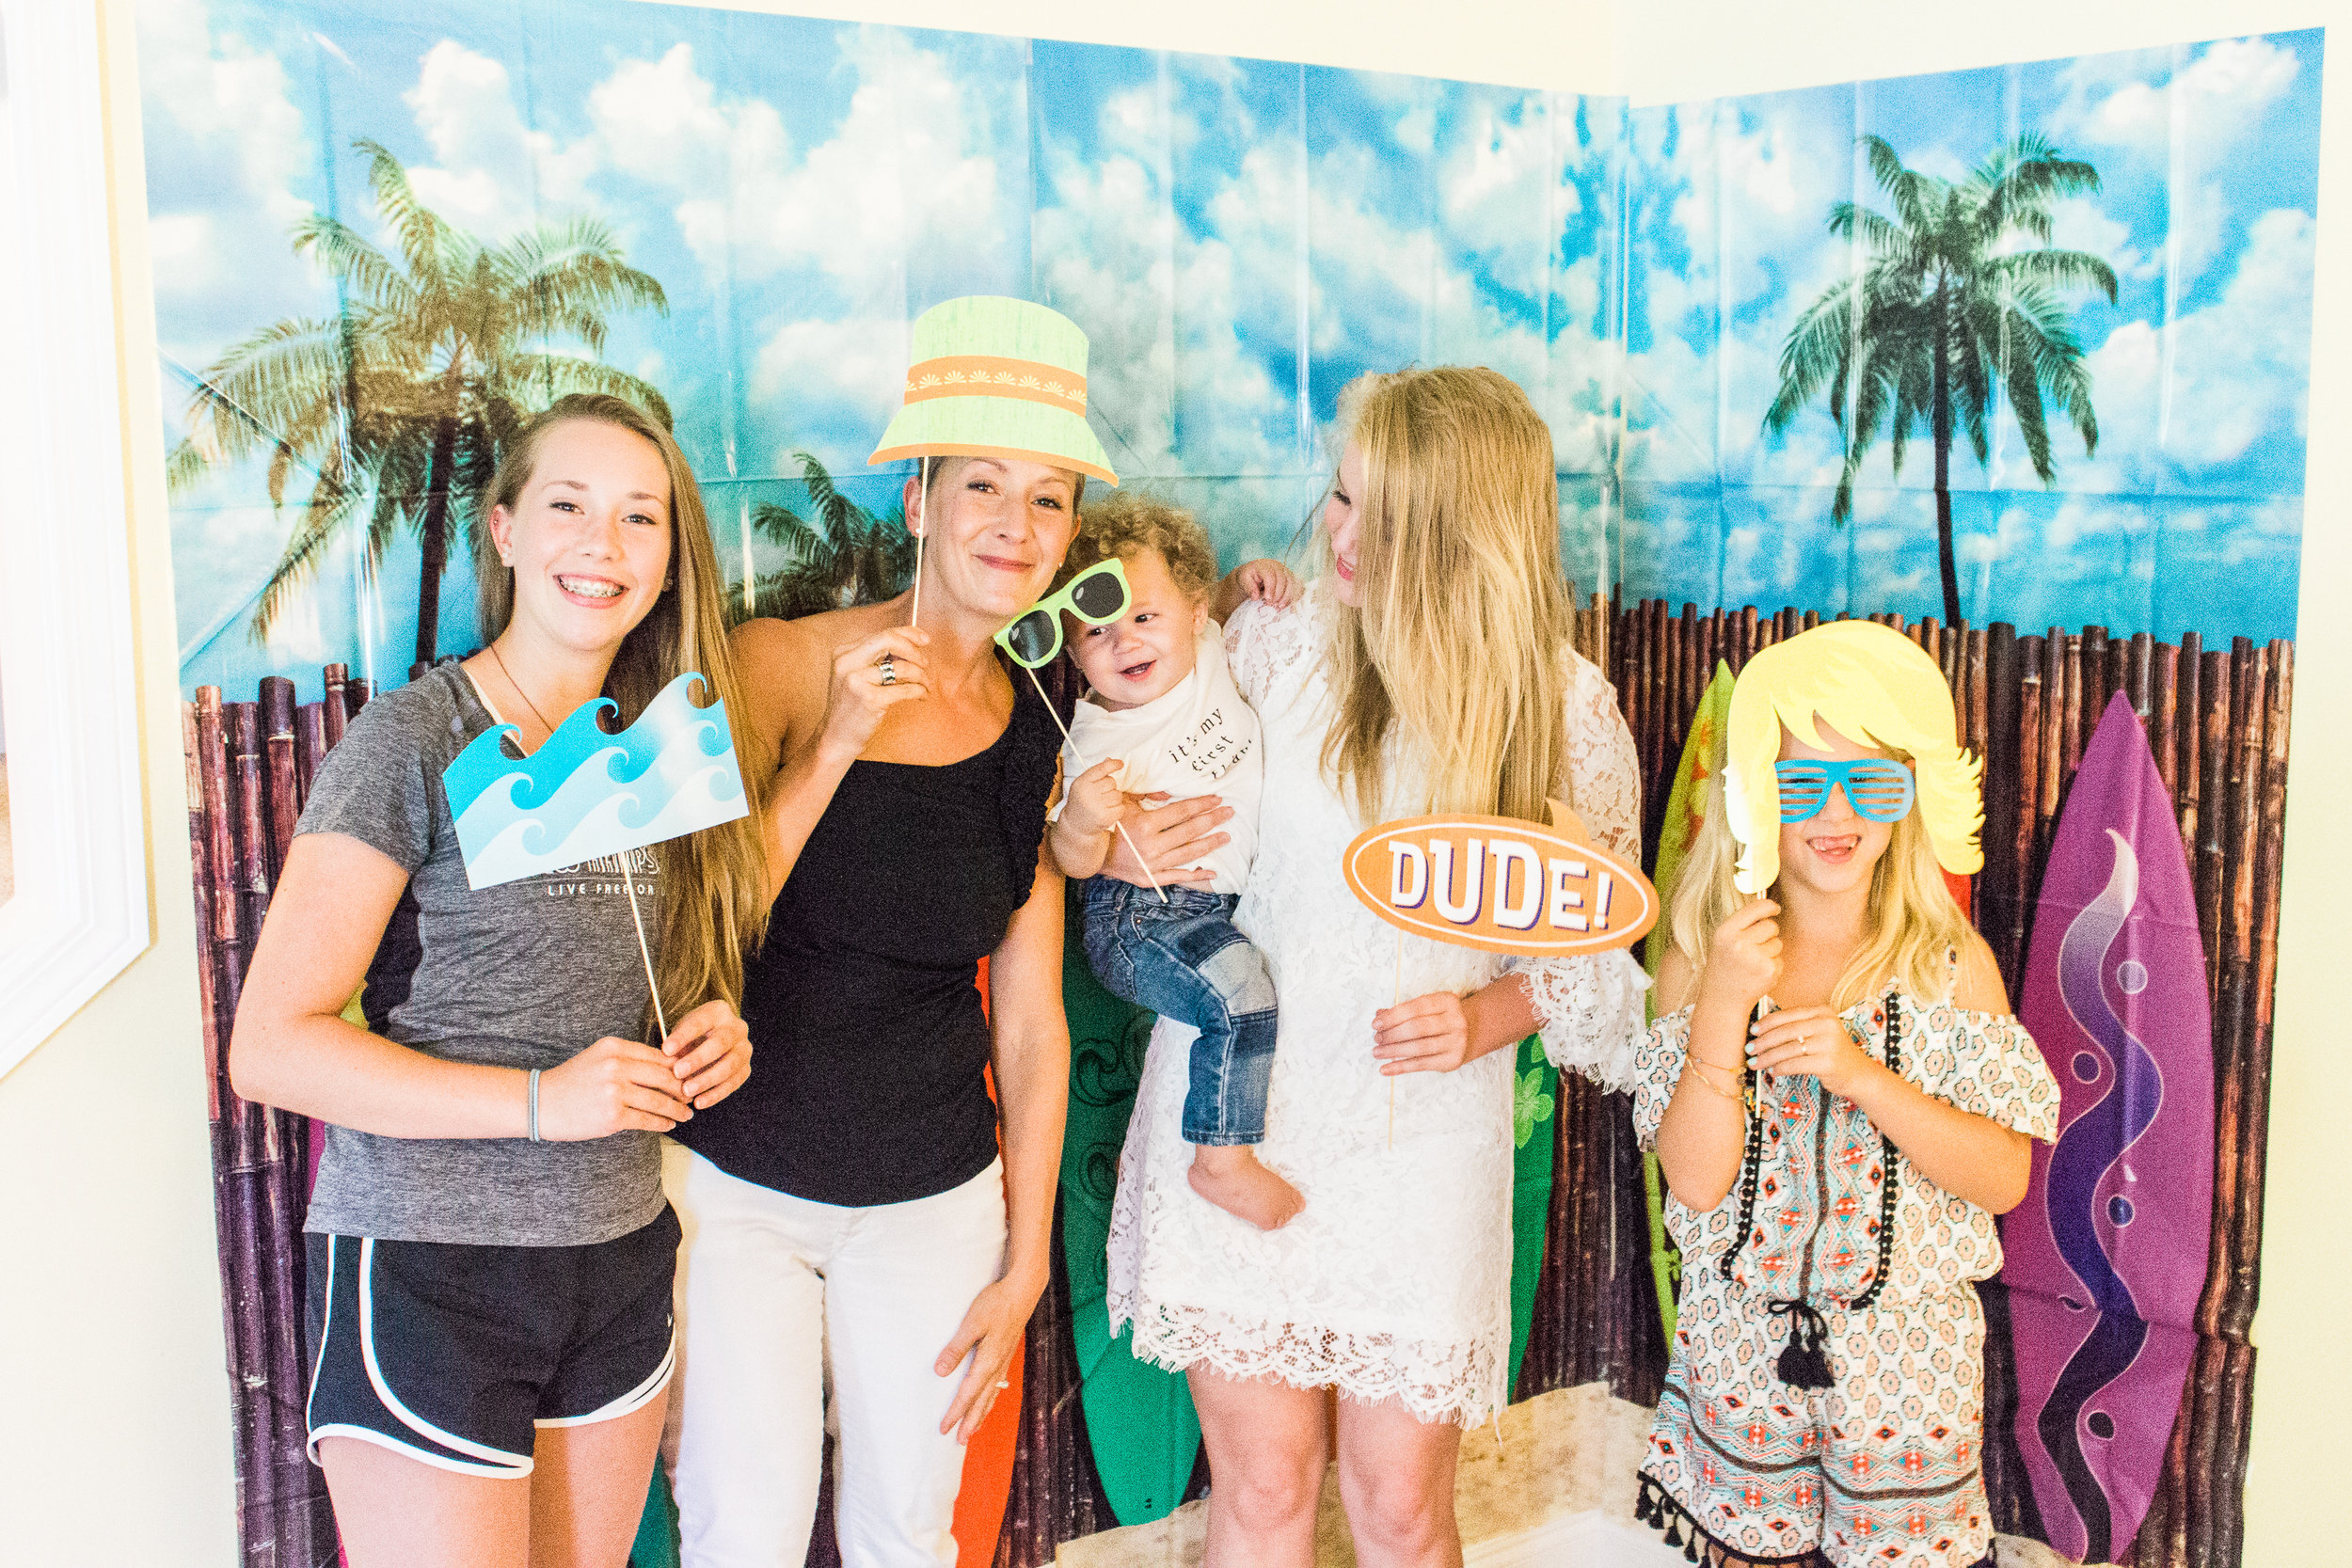 It was so fun to have our  Surf's Up Surfboard Backdrop  with  Surf's Up Photo Stick Props . It was a perfect place for the kids to take photos while the adults chatted! The photo sticks were seriously adorable -- look at Aimery's sunglasses!!!